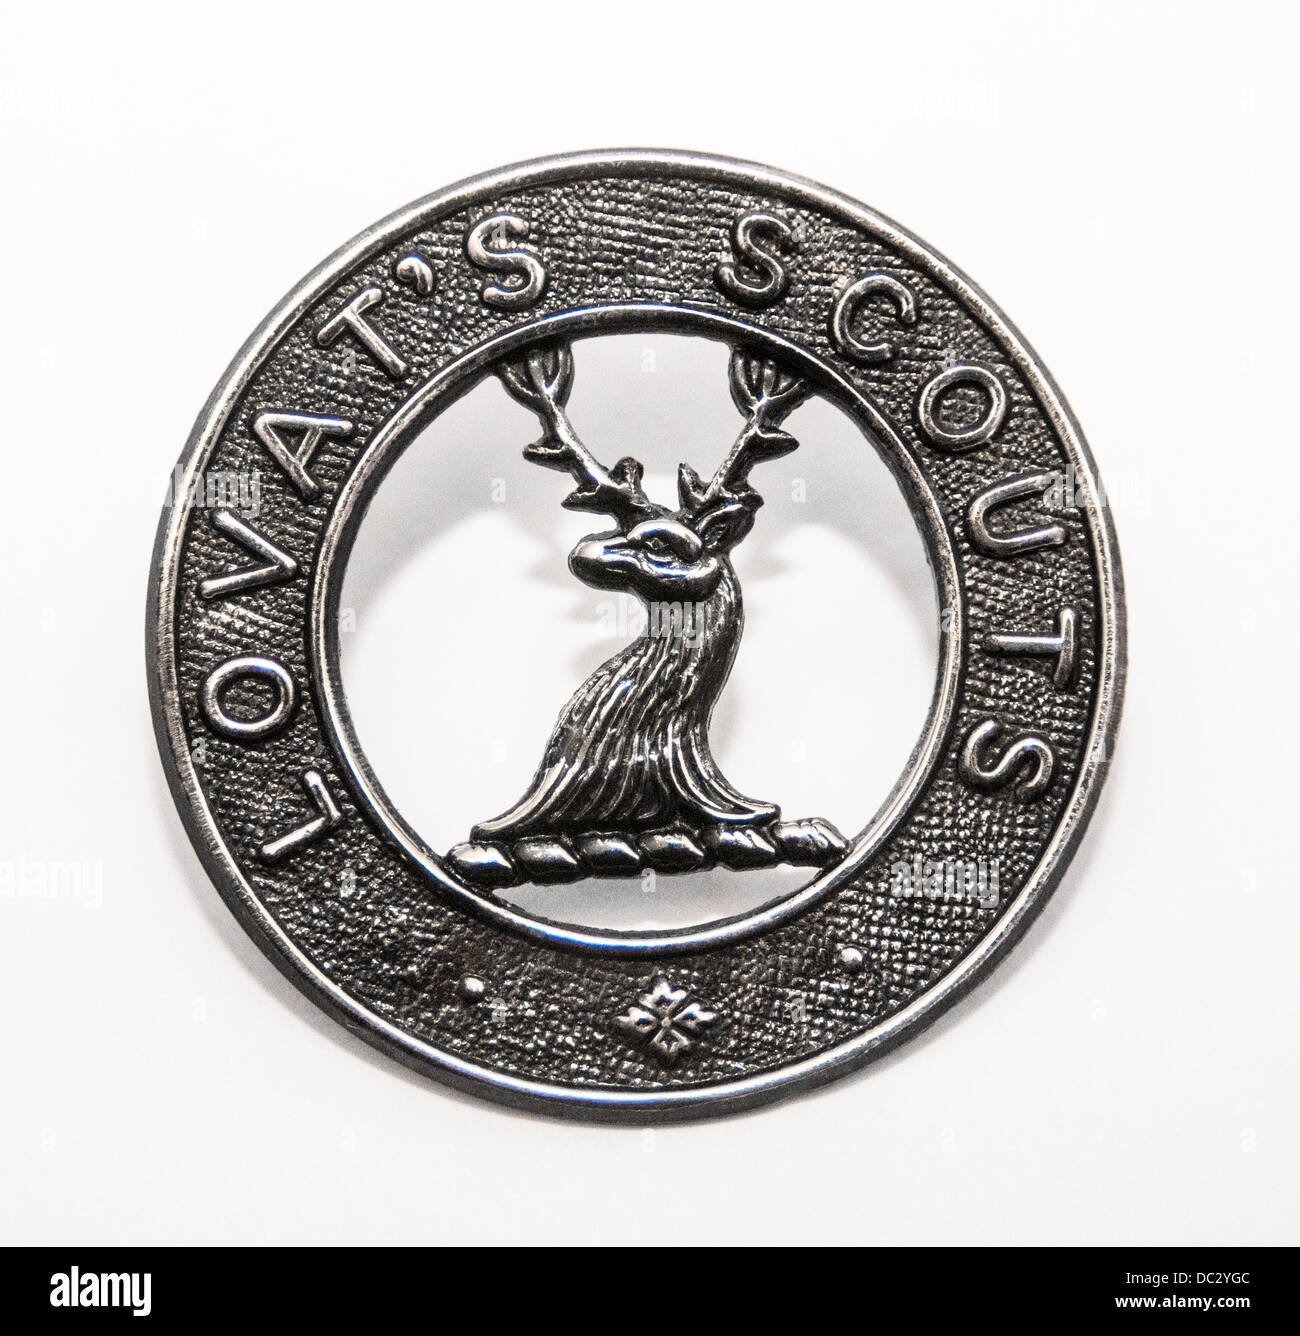 Regimental Cap badge of the Lovat Scouts Regiment raised by Lord Lovat in The Boer War - Stock Image